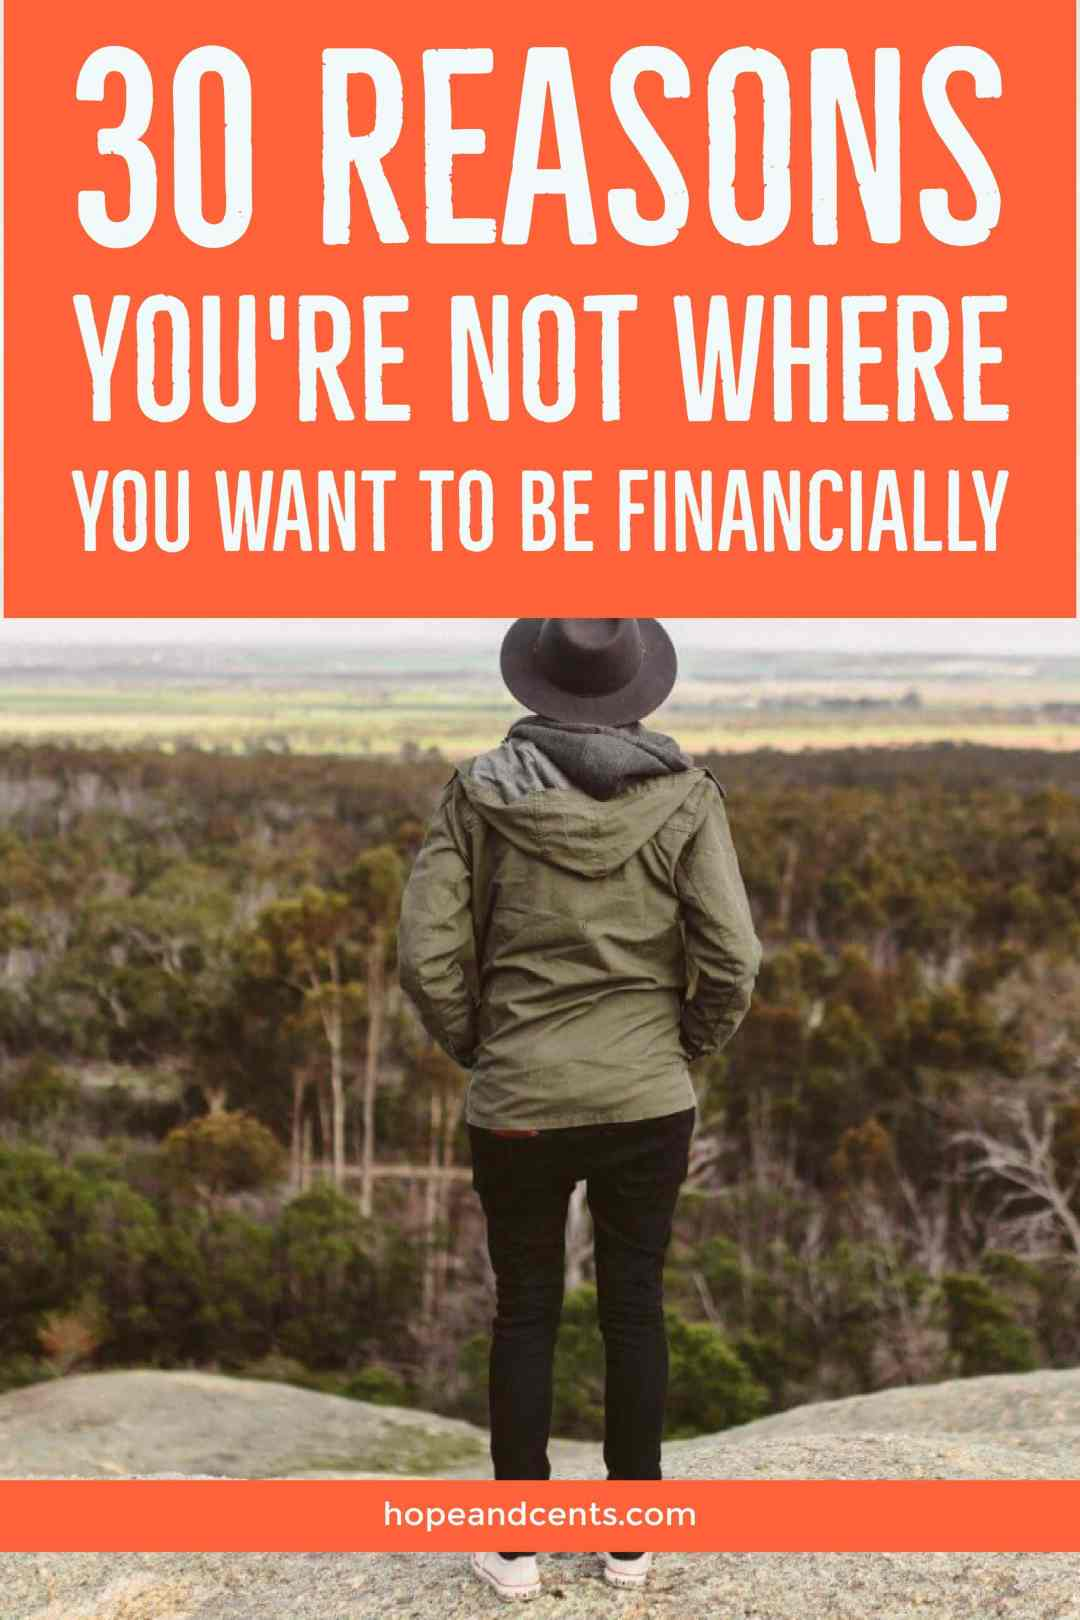 Are you unhappy with where you are financially? This list of reasons will help you pinpoint the reasons that are holding you back and will help you take action to meet your financial goals.